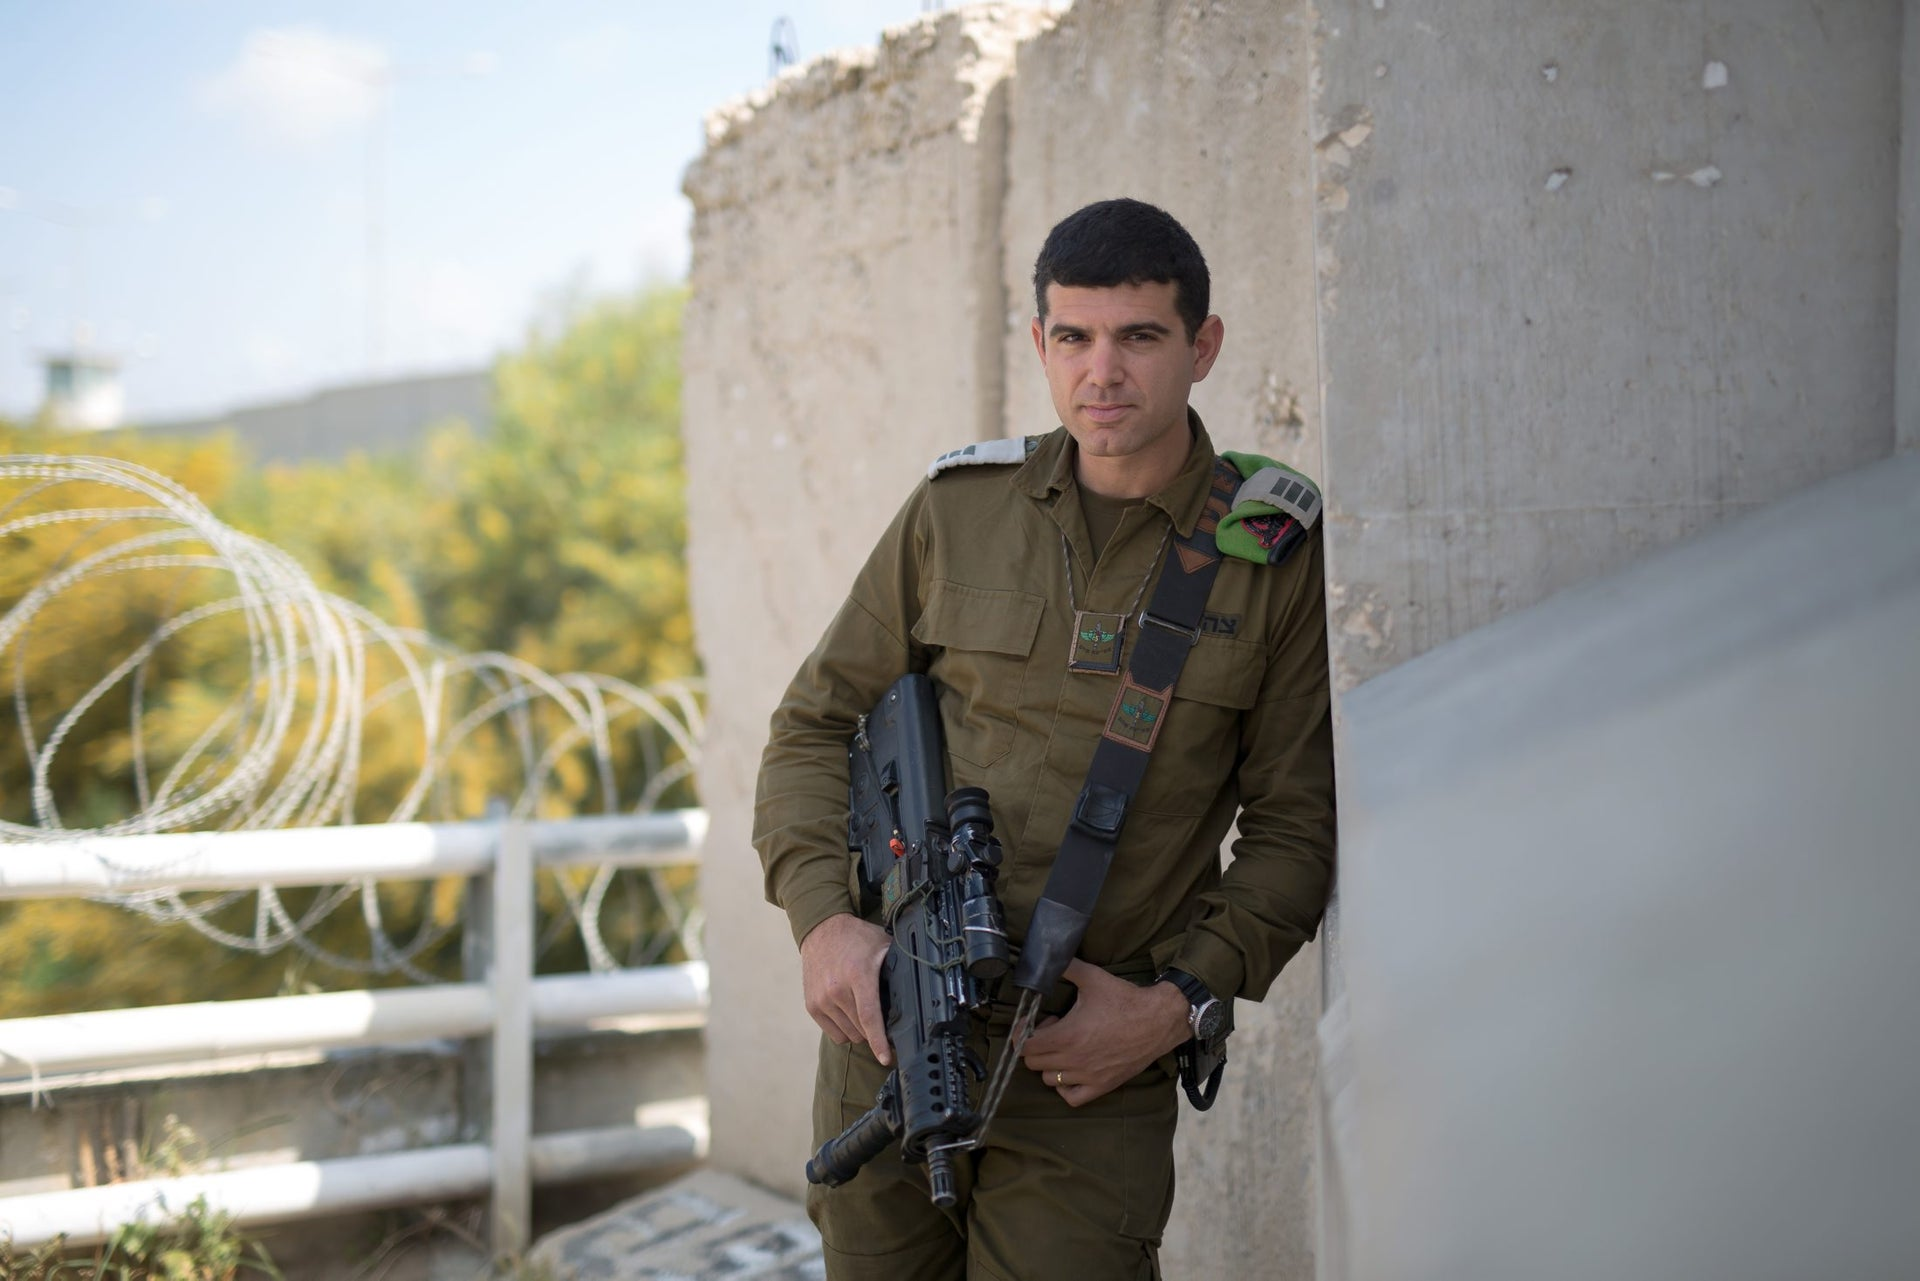 Capt. Nissim Bublil from the Nahal Brigade